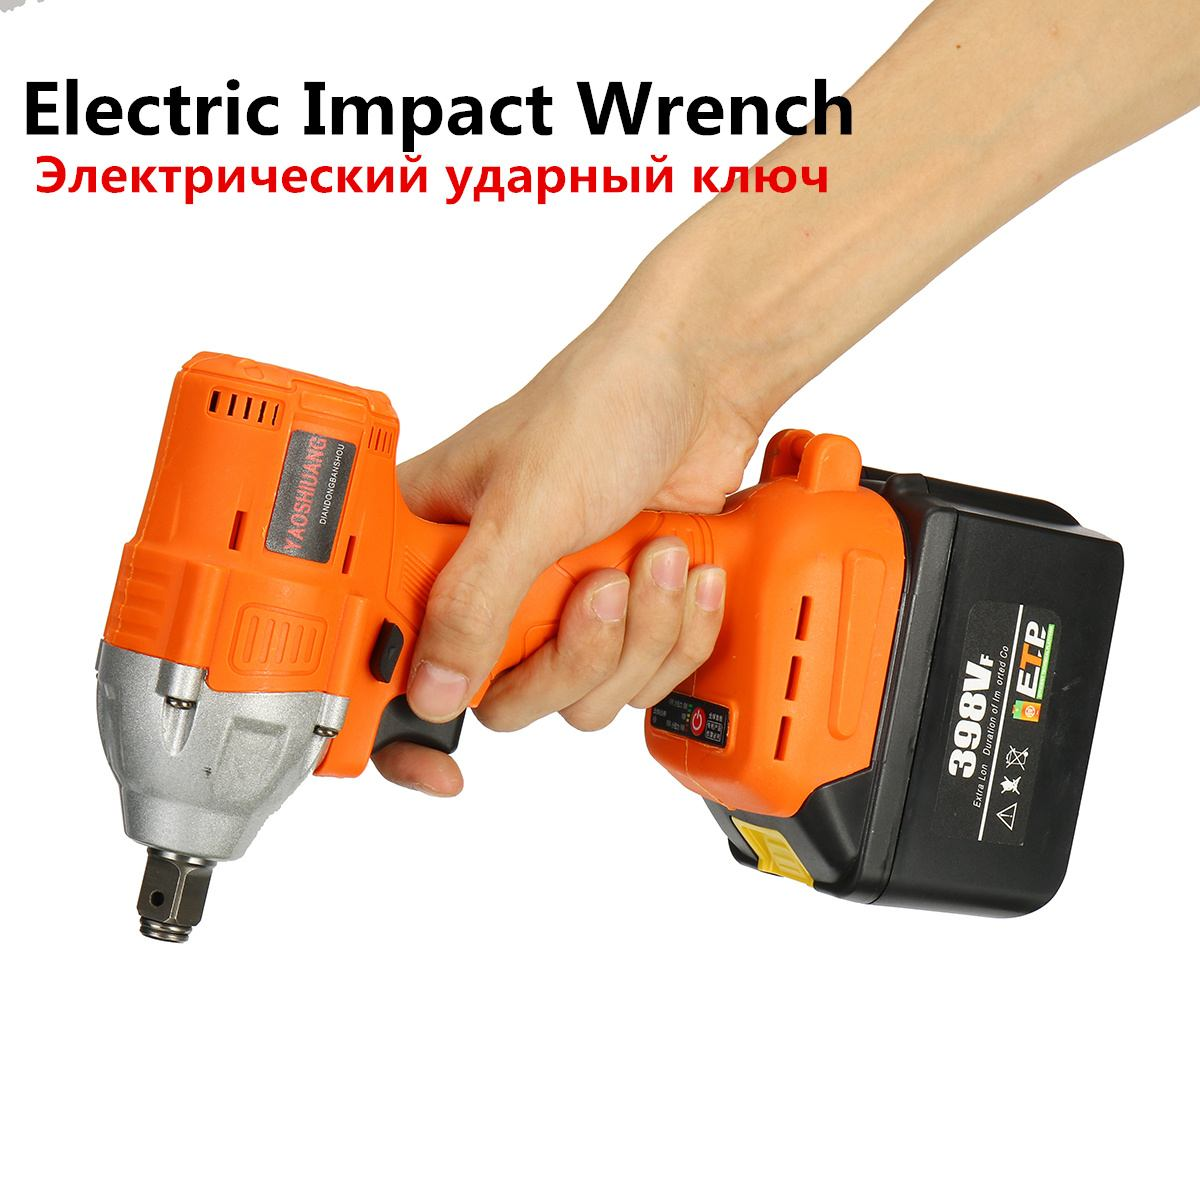 YAOSHUANG 680NM 750W Electric Impact Wrench Battery Wrench Brushless Cordless Impact Wrench 39800mAh Power Motor With Sleeves